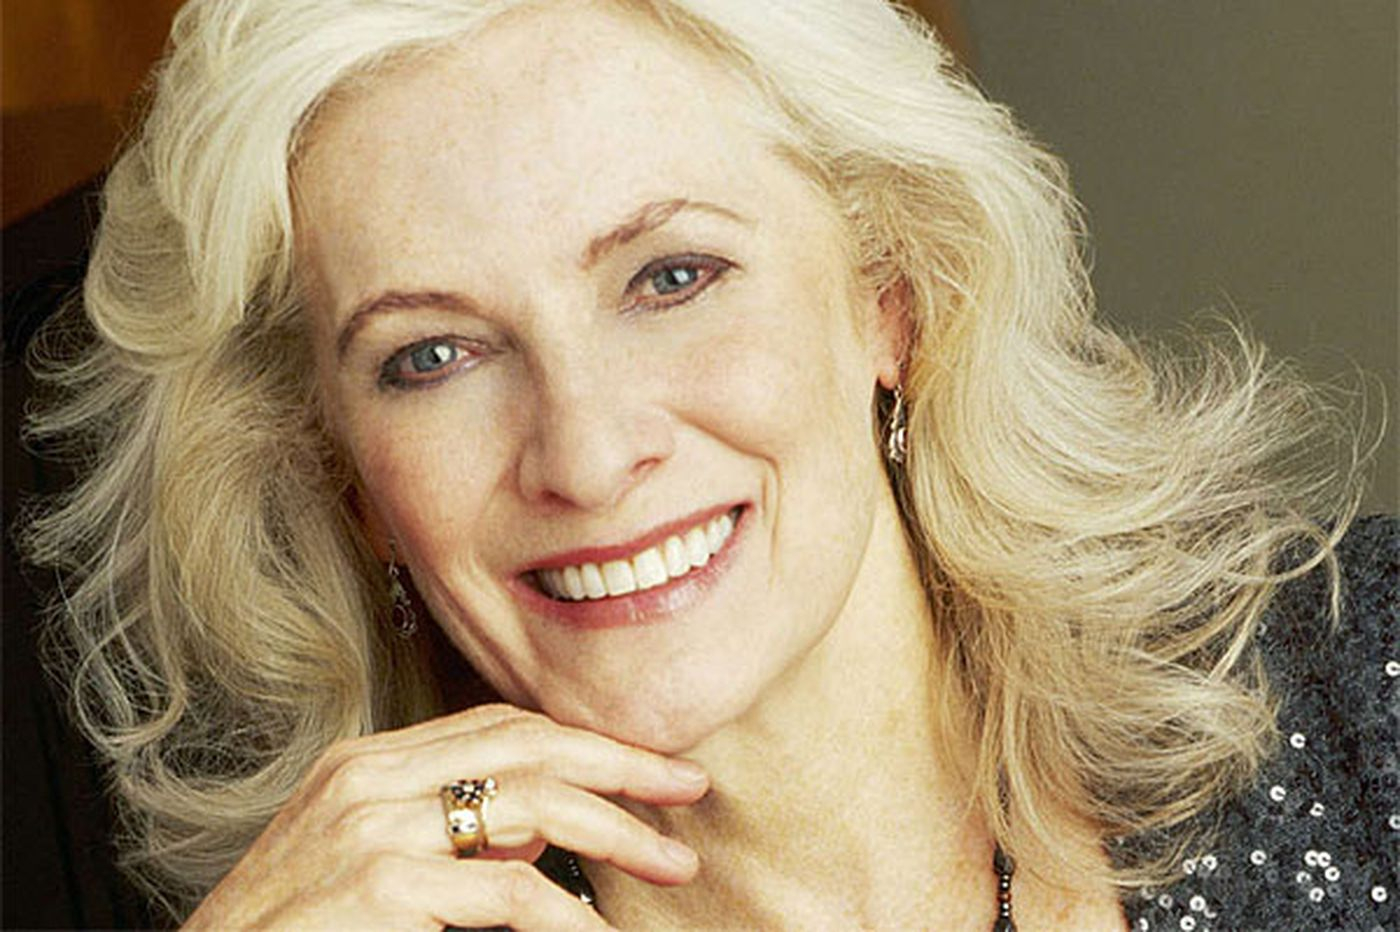 Multitasking the way to go for Broadway icon Betty Buckley